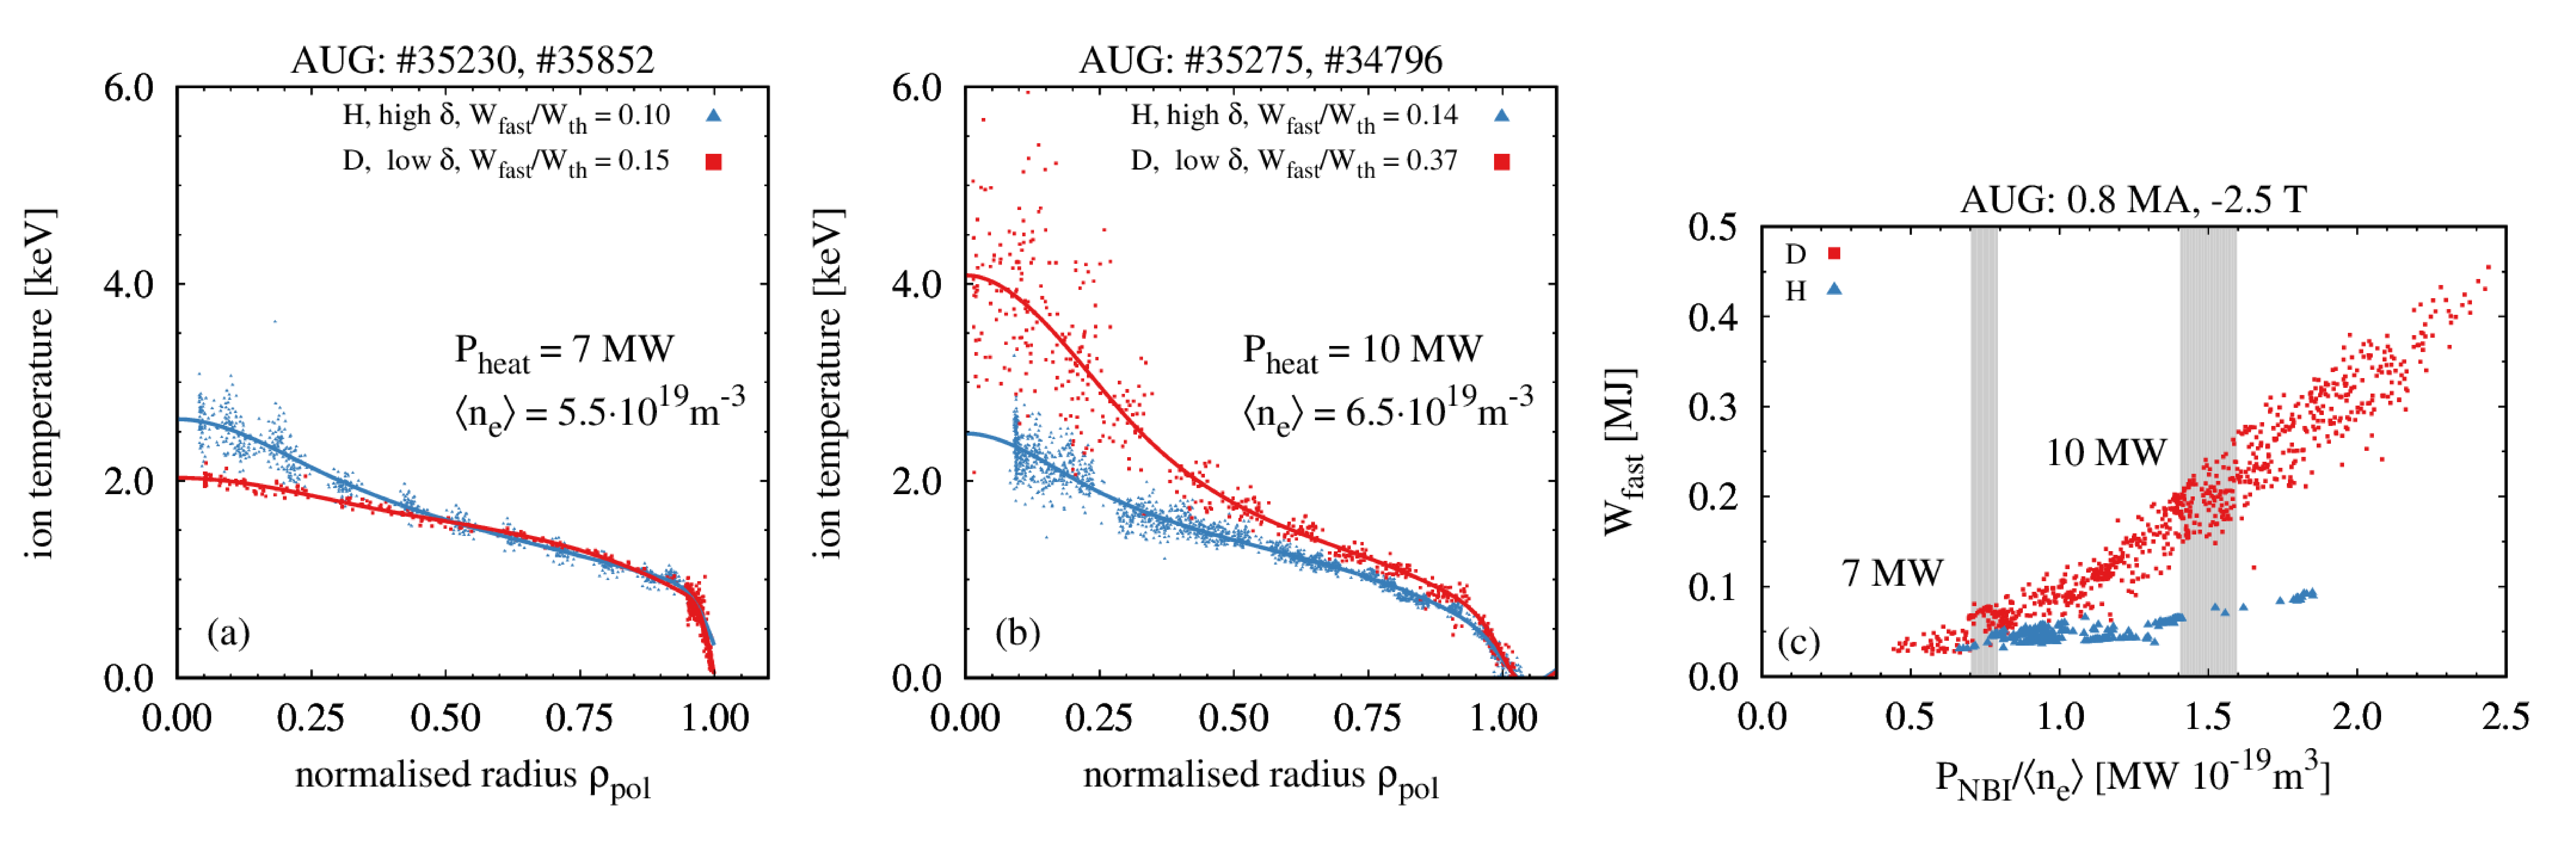 Ion temperatures for low $W_{\rm fast}$ and different isotopes (a). Ion temperatures for high $W_{\rm fast}$ with $W_{\rm fast,H}< W_{\rm fast,D}$ and different isotopes (b). Heating power dependence of classical $W_{\rm fast}$ from RABBIT (c).